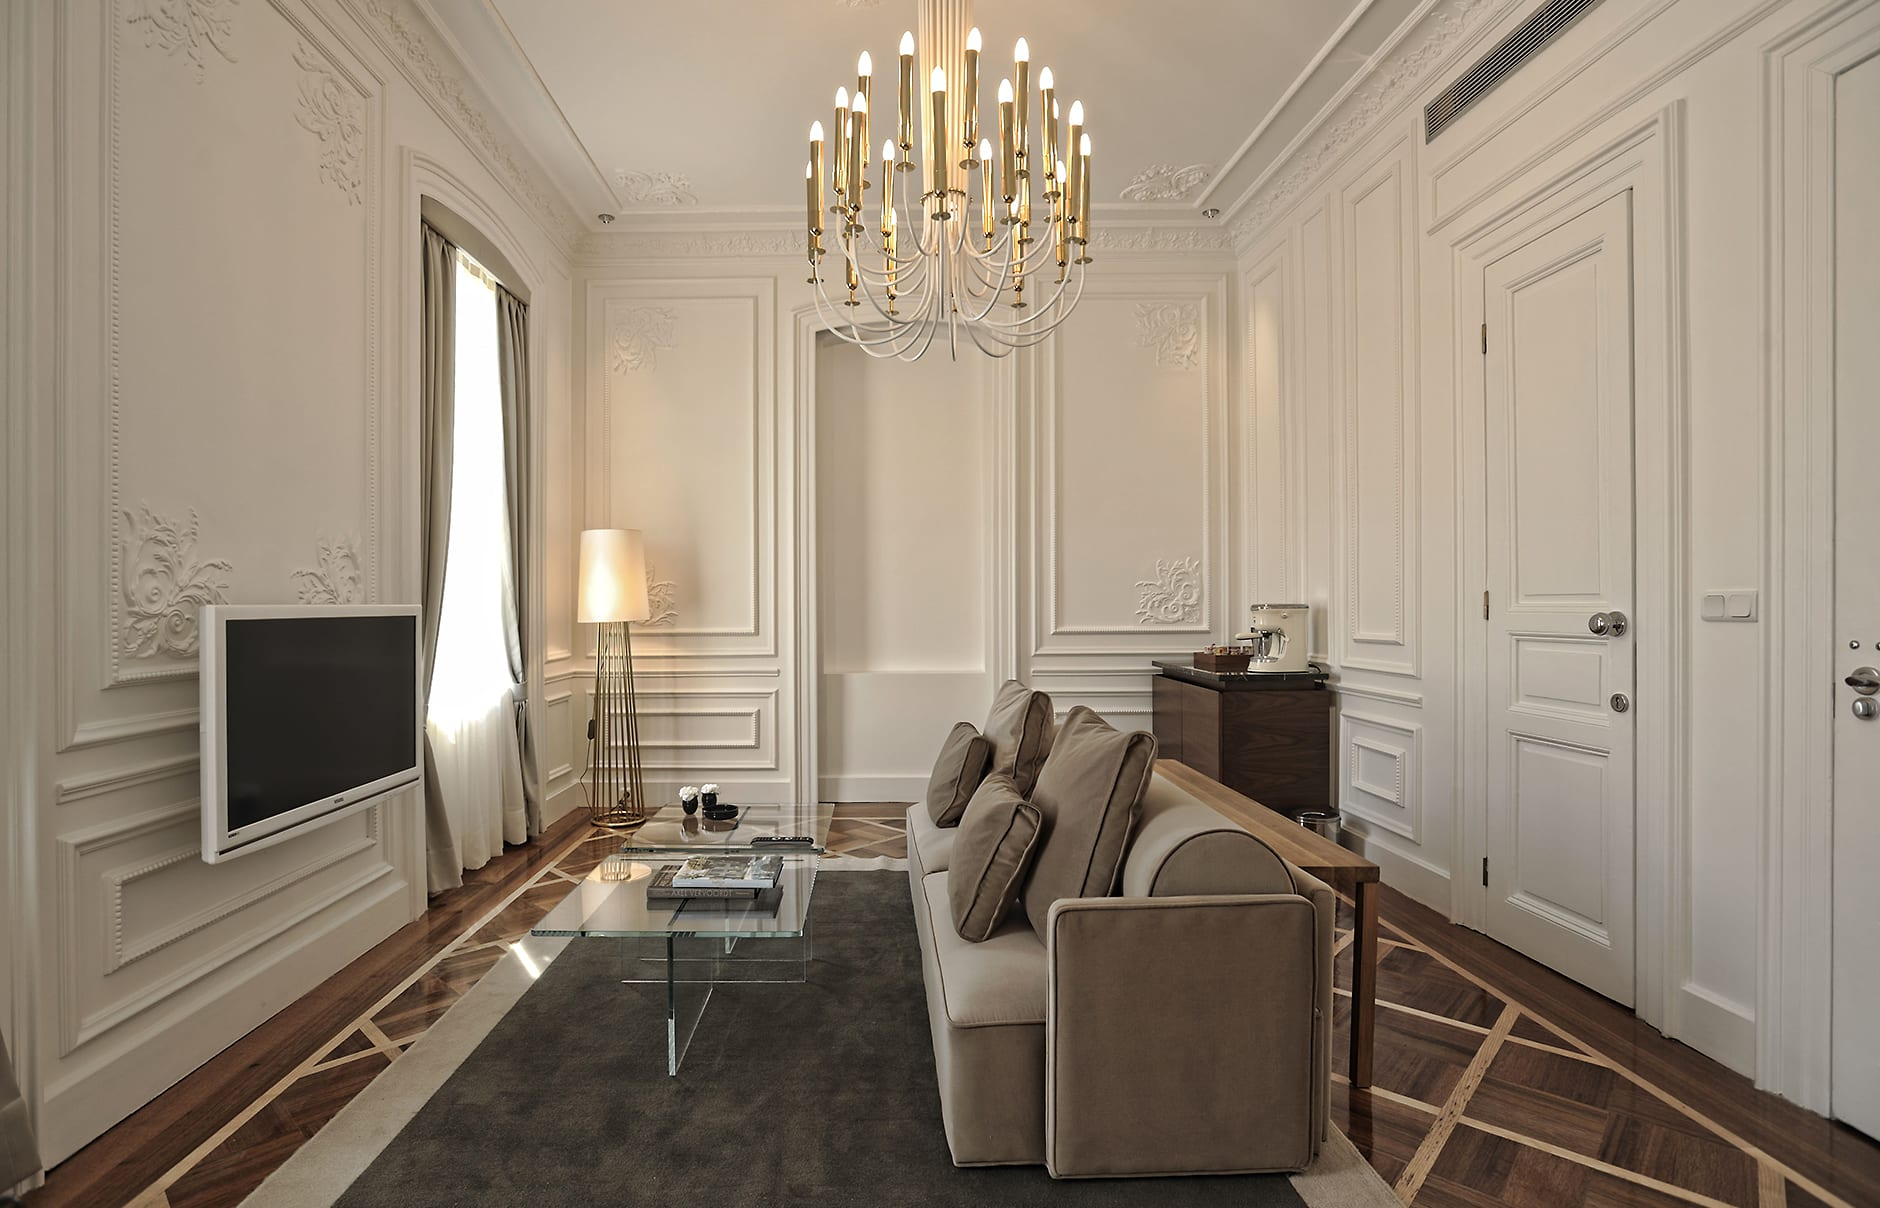 Executive Suite. The House Hotel Galatasaray, Istanbul. ©The House Hotel